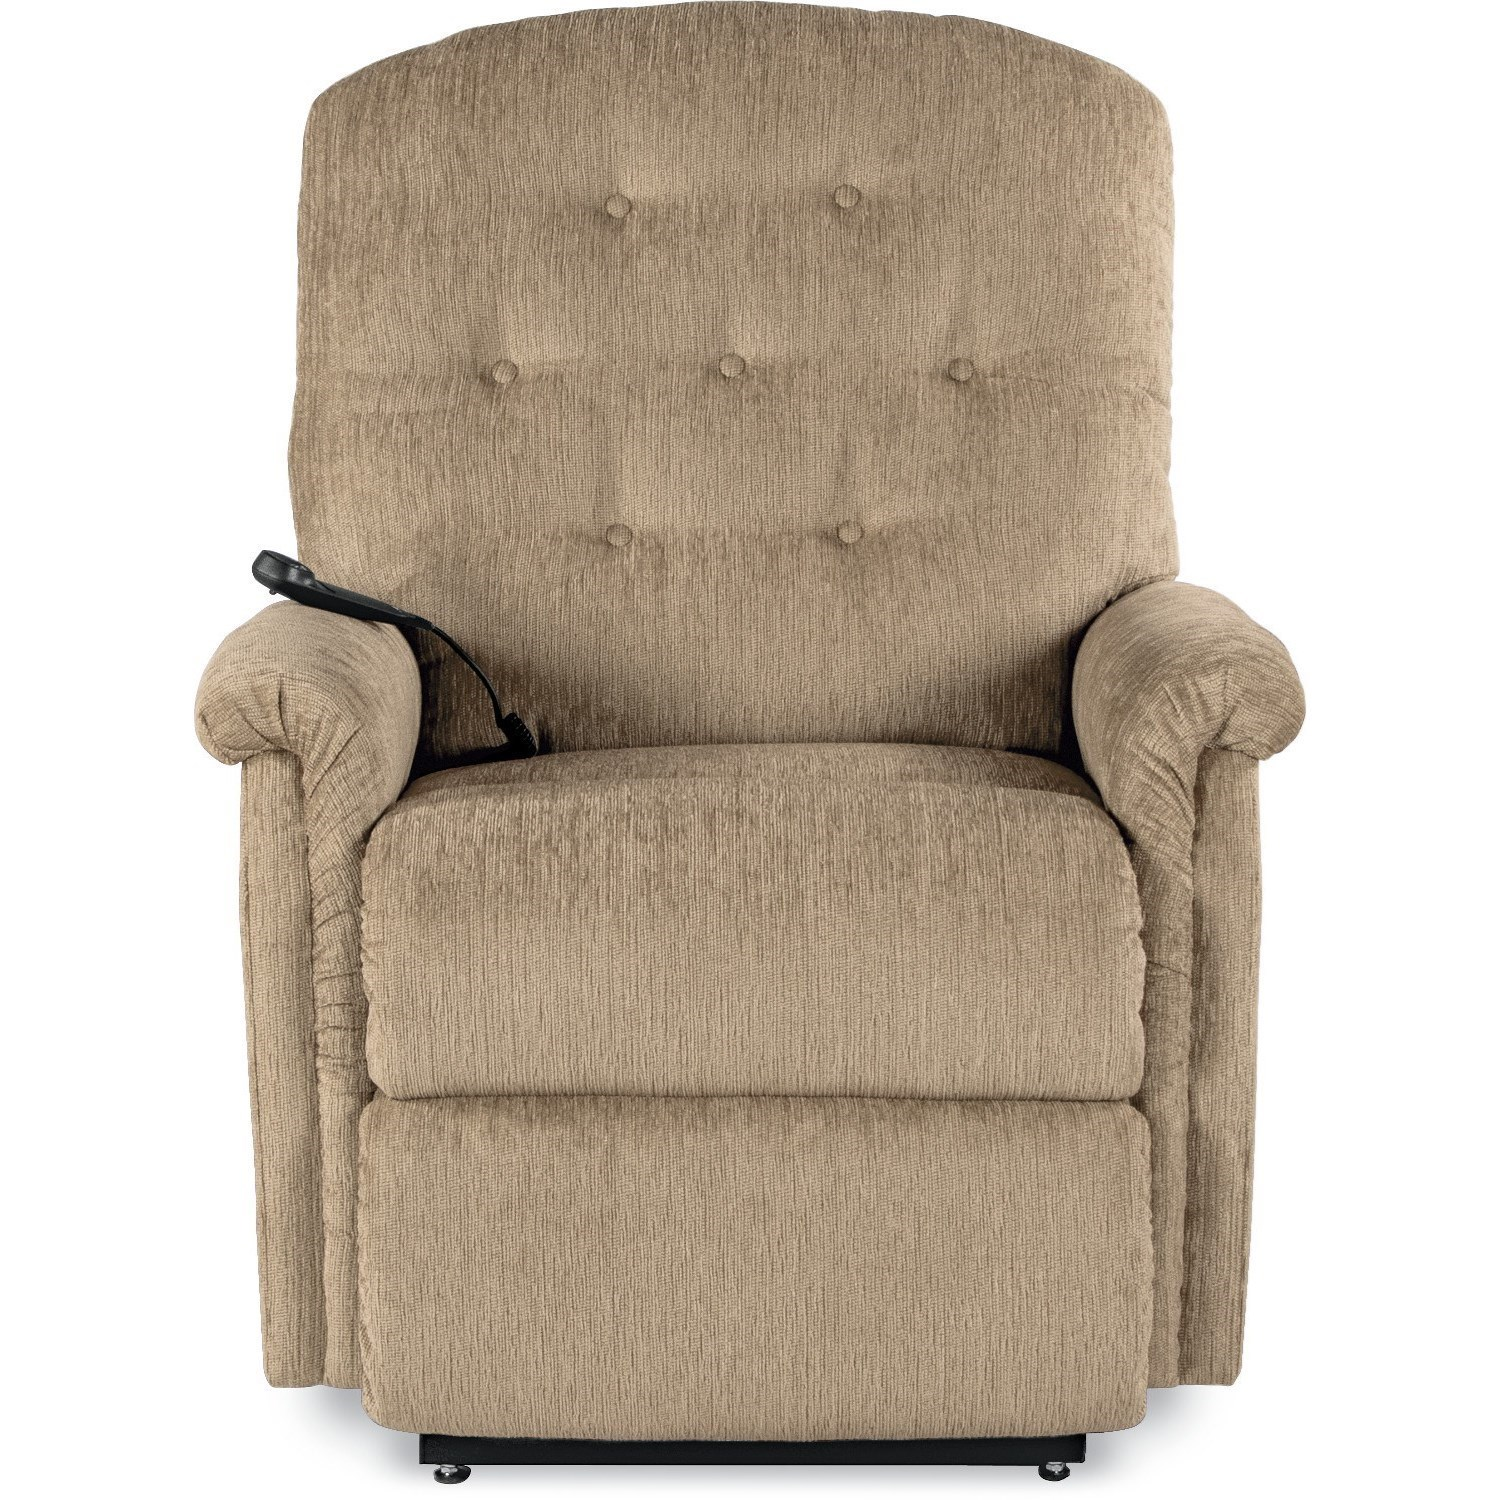 Lift Assist Chair Recliners Ally Lift Chair With Recline And Silver Luxury Lift Mechanism By La Z Boy At Houston S Yuma Furniture